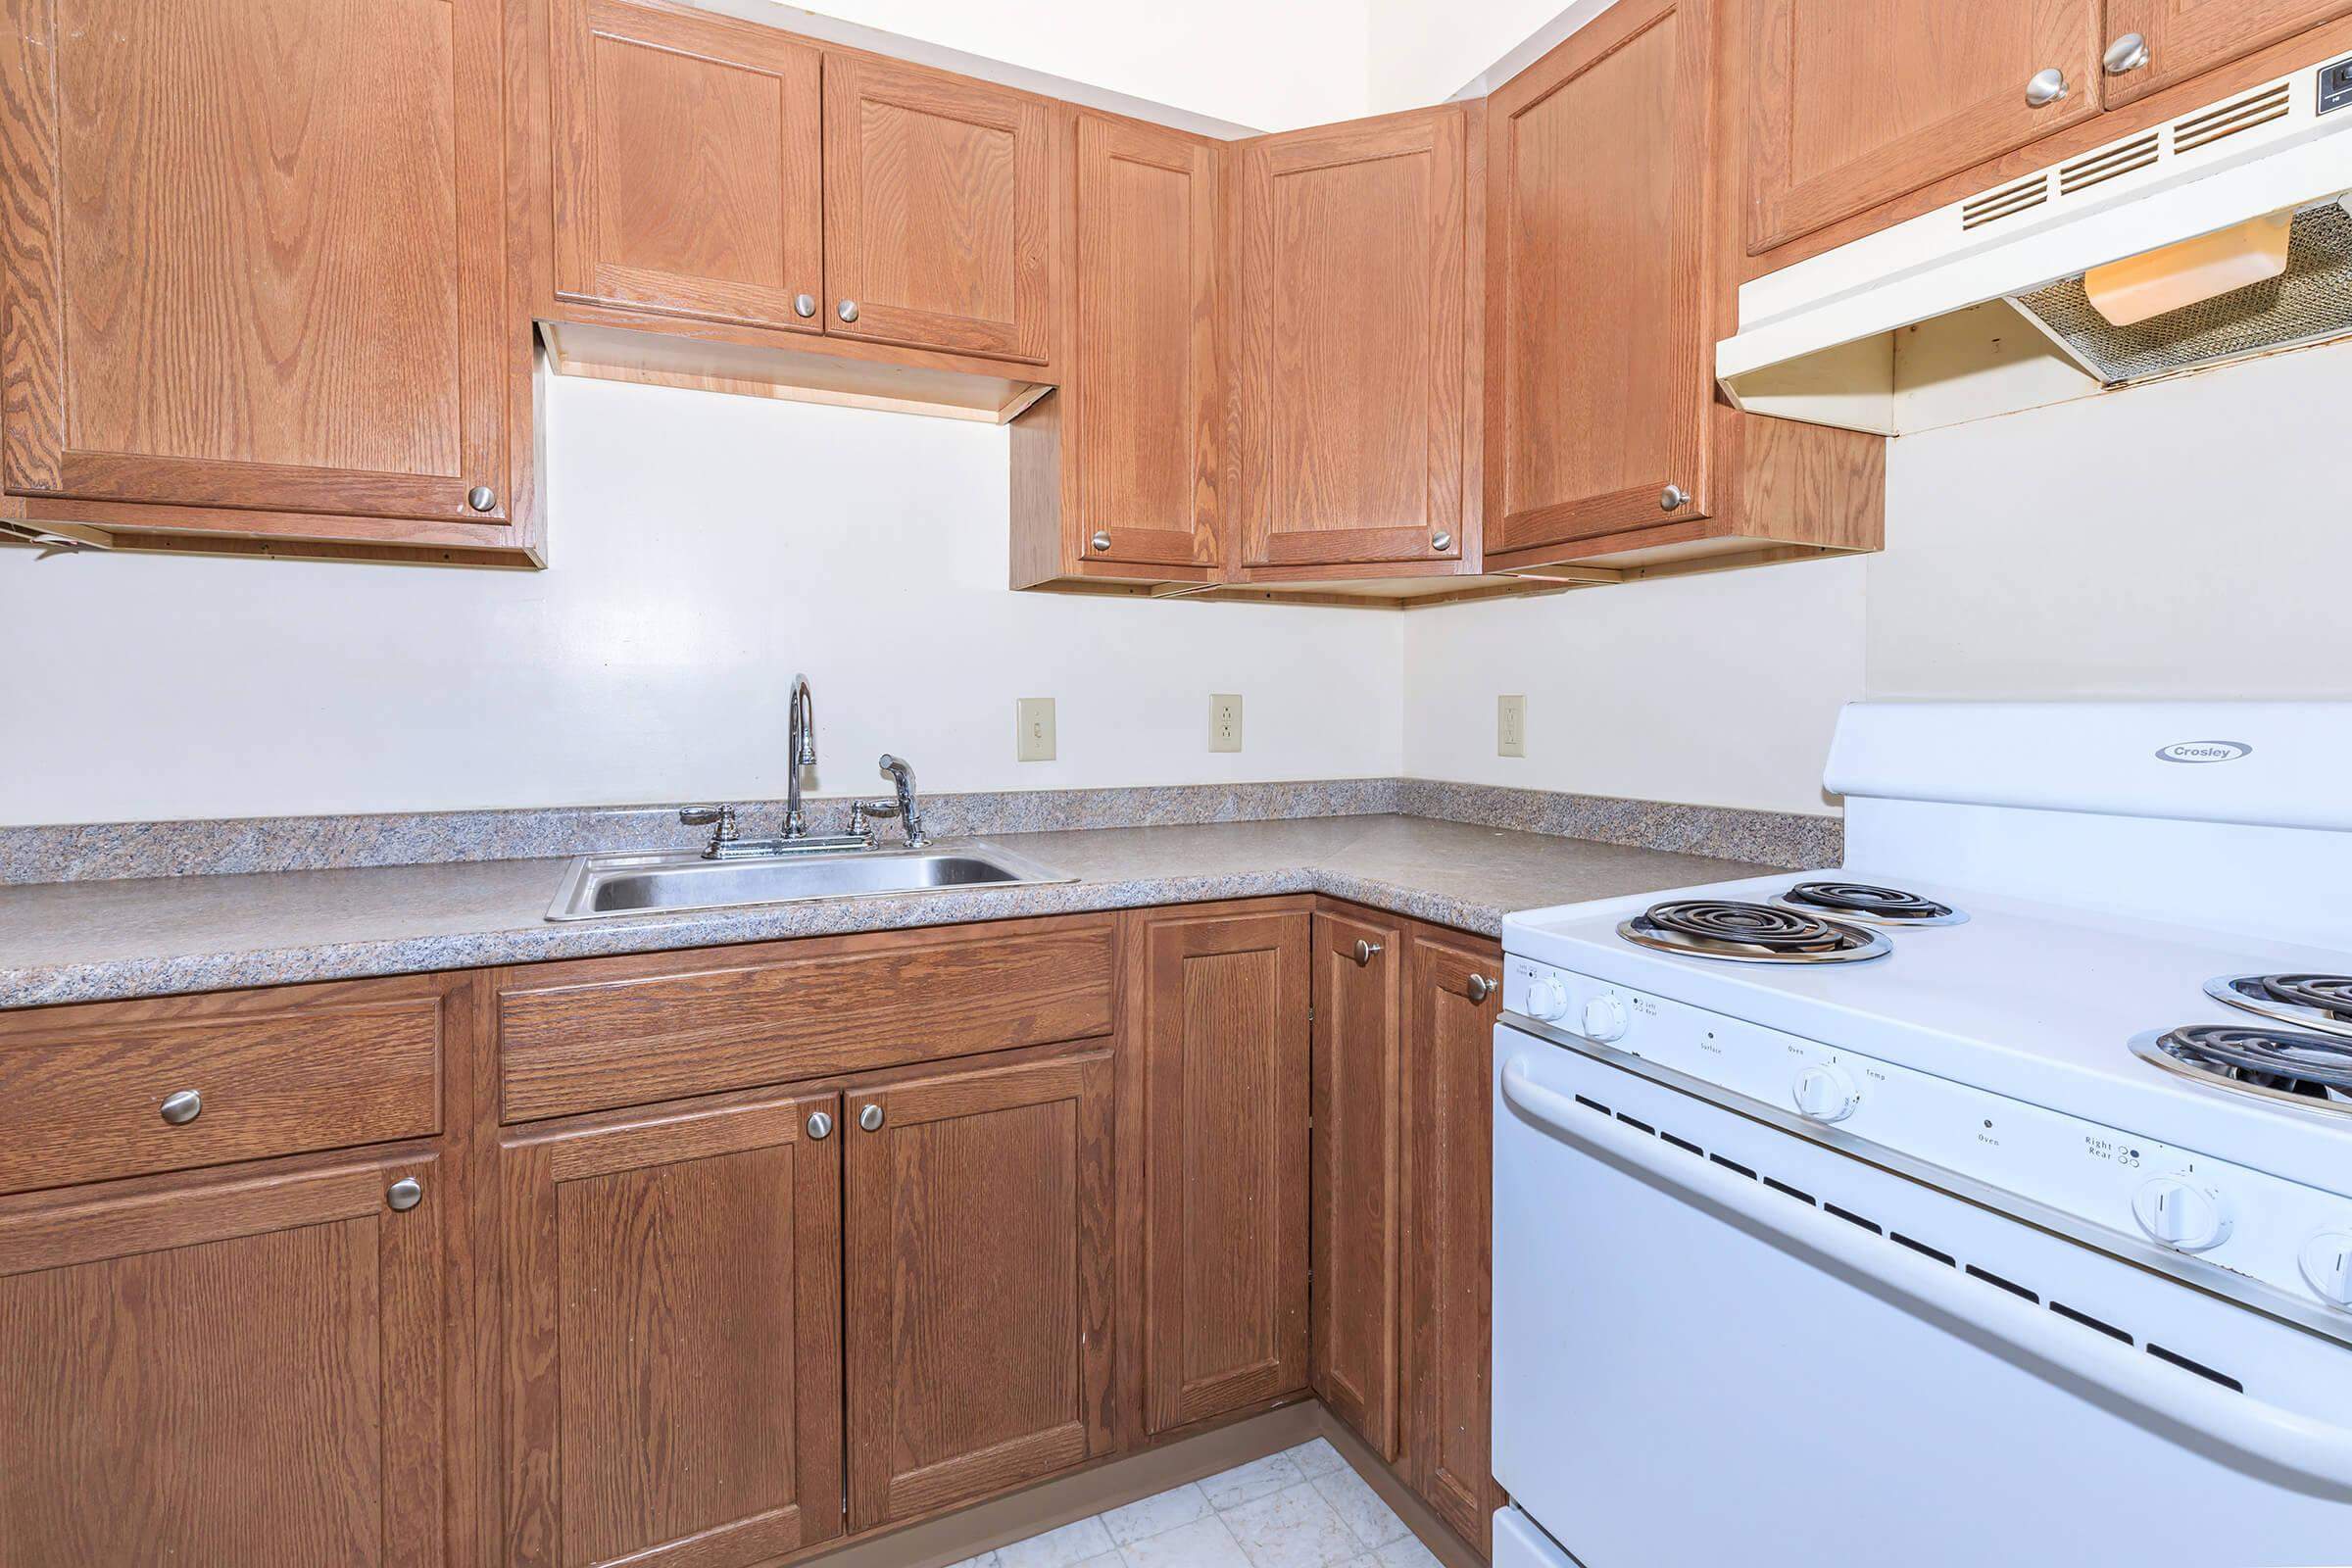 a kitchen with wooden cabinets